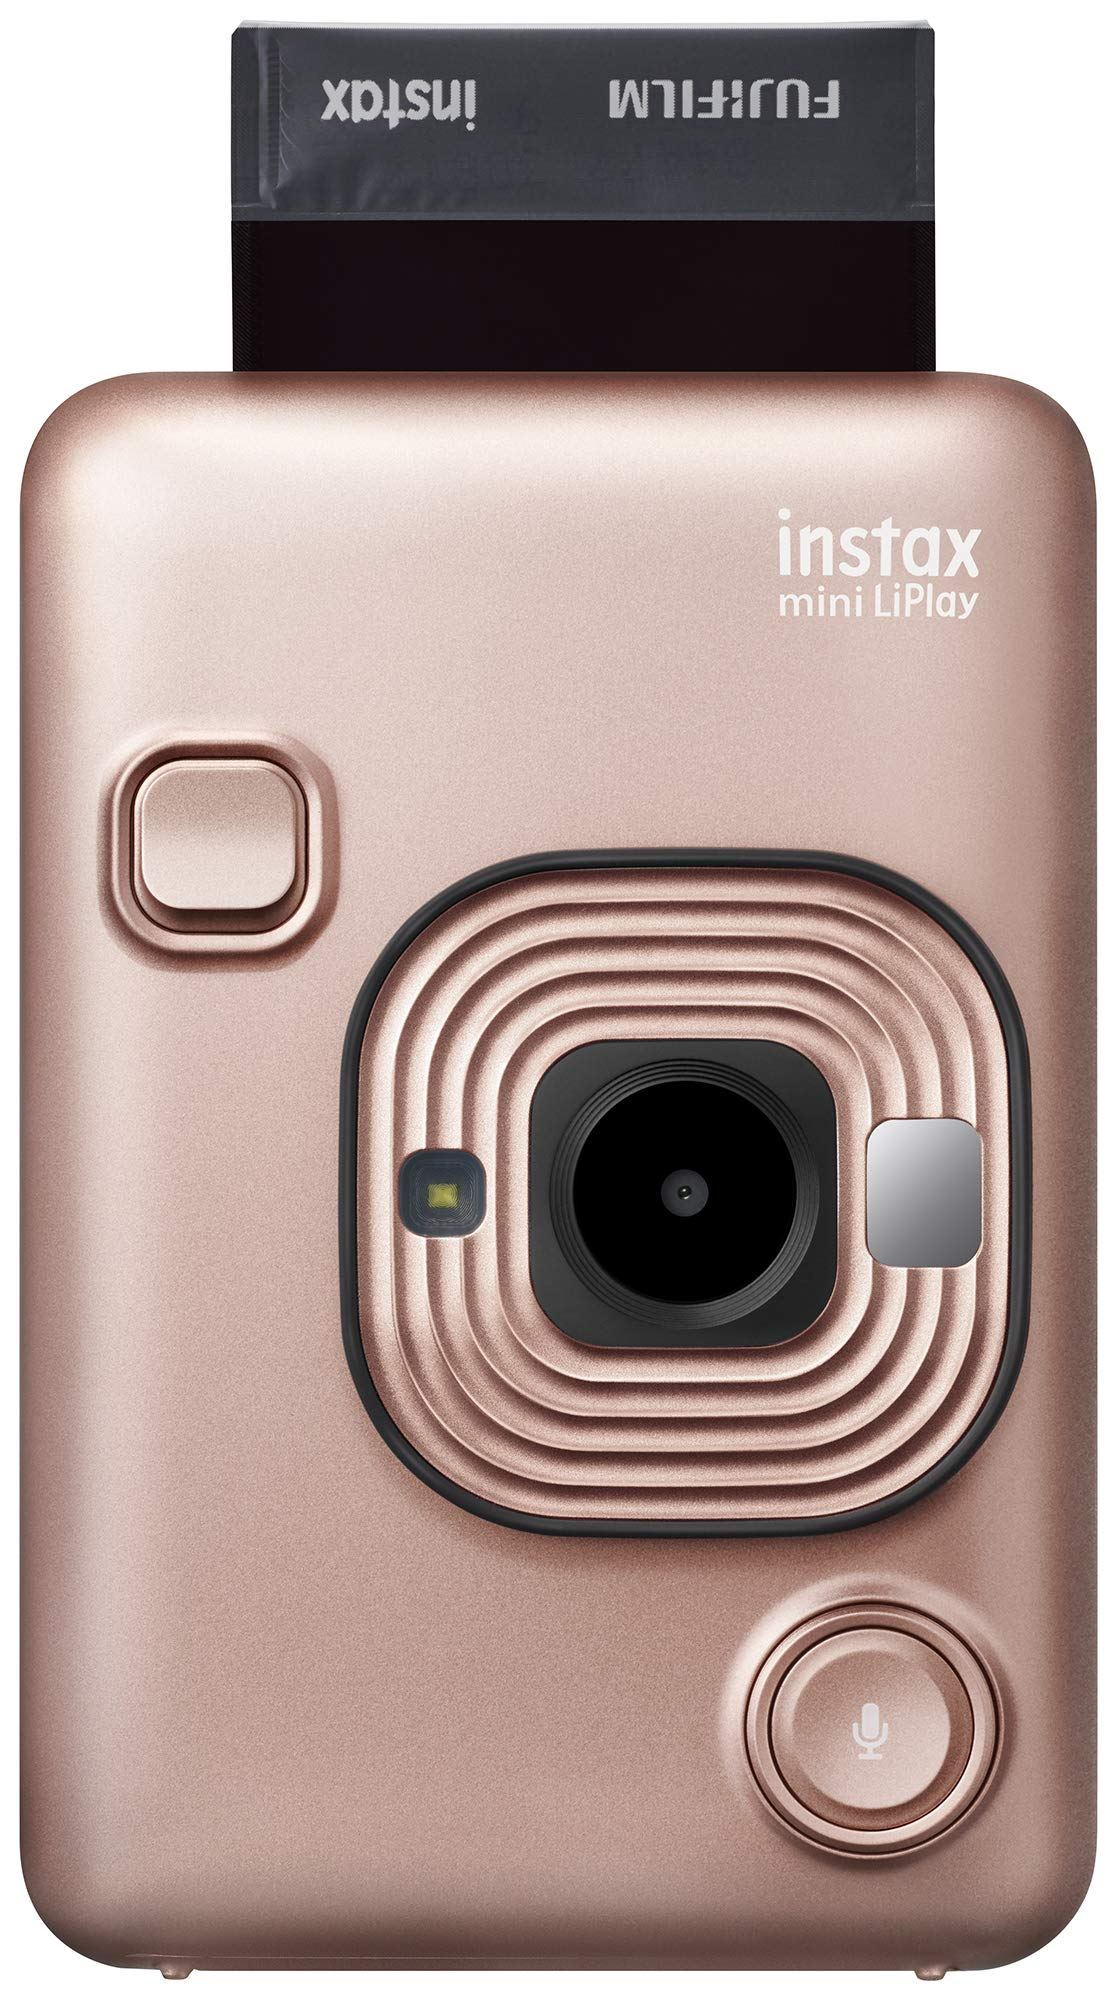 Instax Mini Liplay Hybrid Instant Camera - Blush Gold